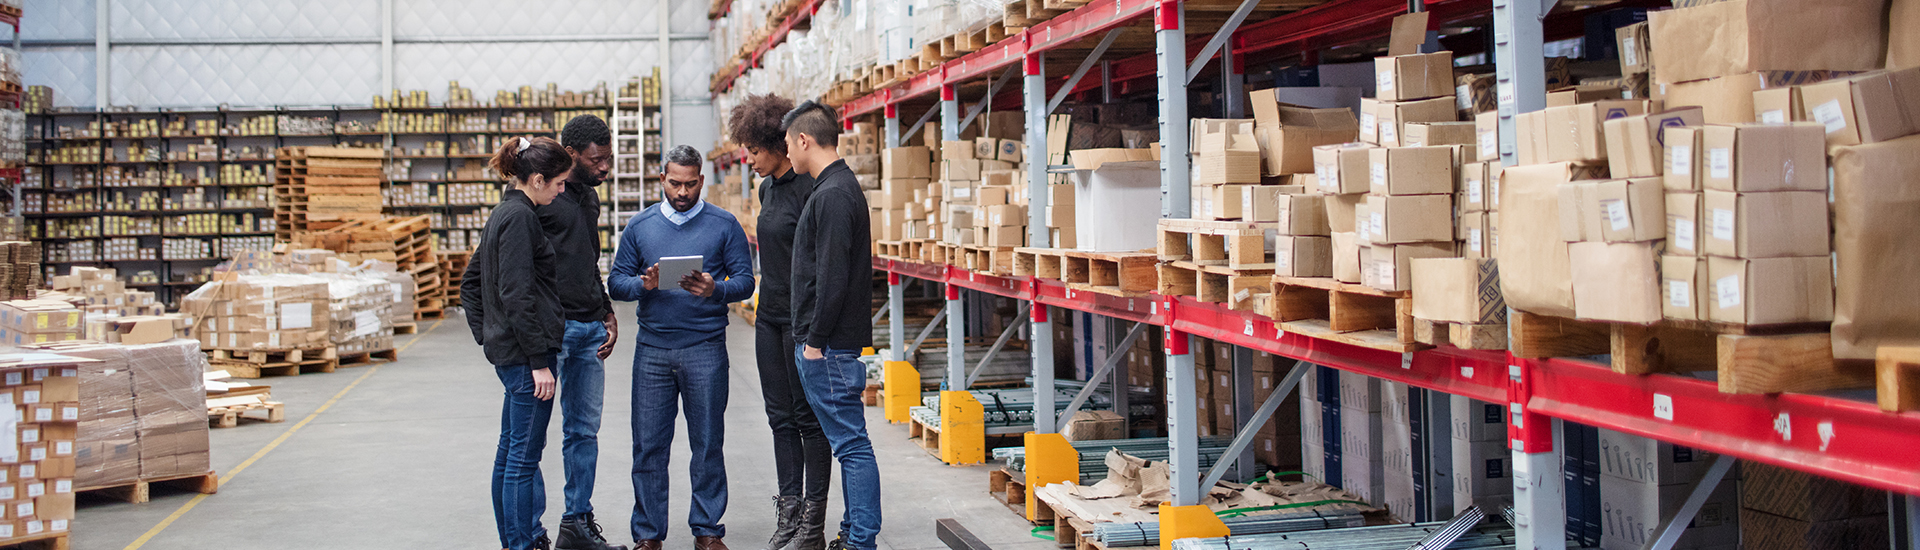 10 Ways Manufacturing Companies Can Build Talent Dimension Into Their Brand